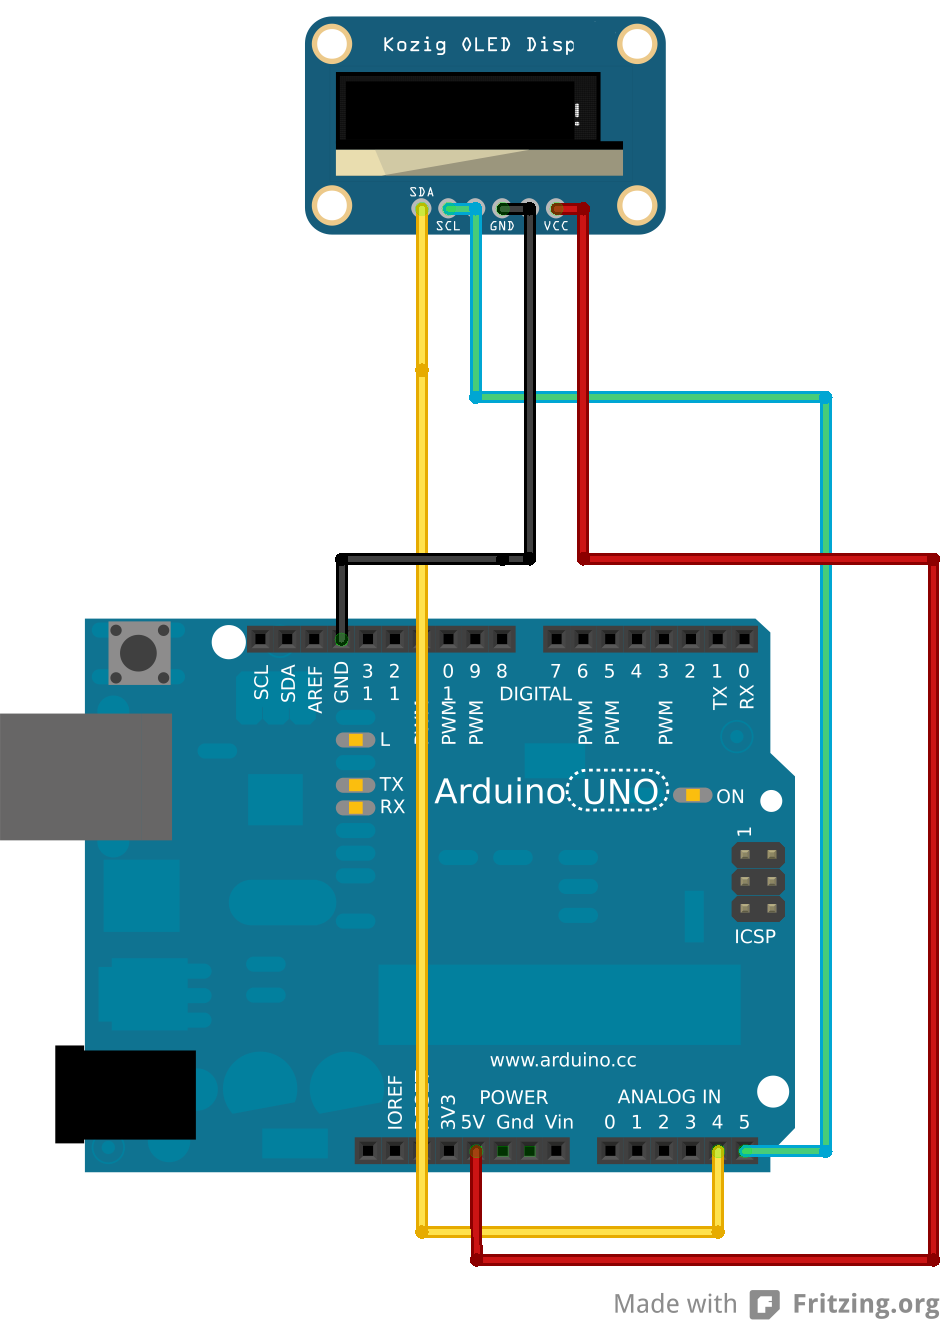 NetSensor step 2: How to connect arduino to an OLED display